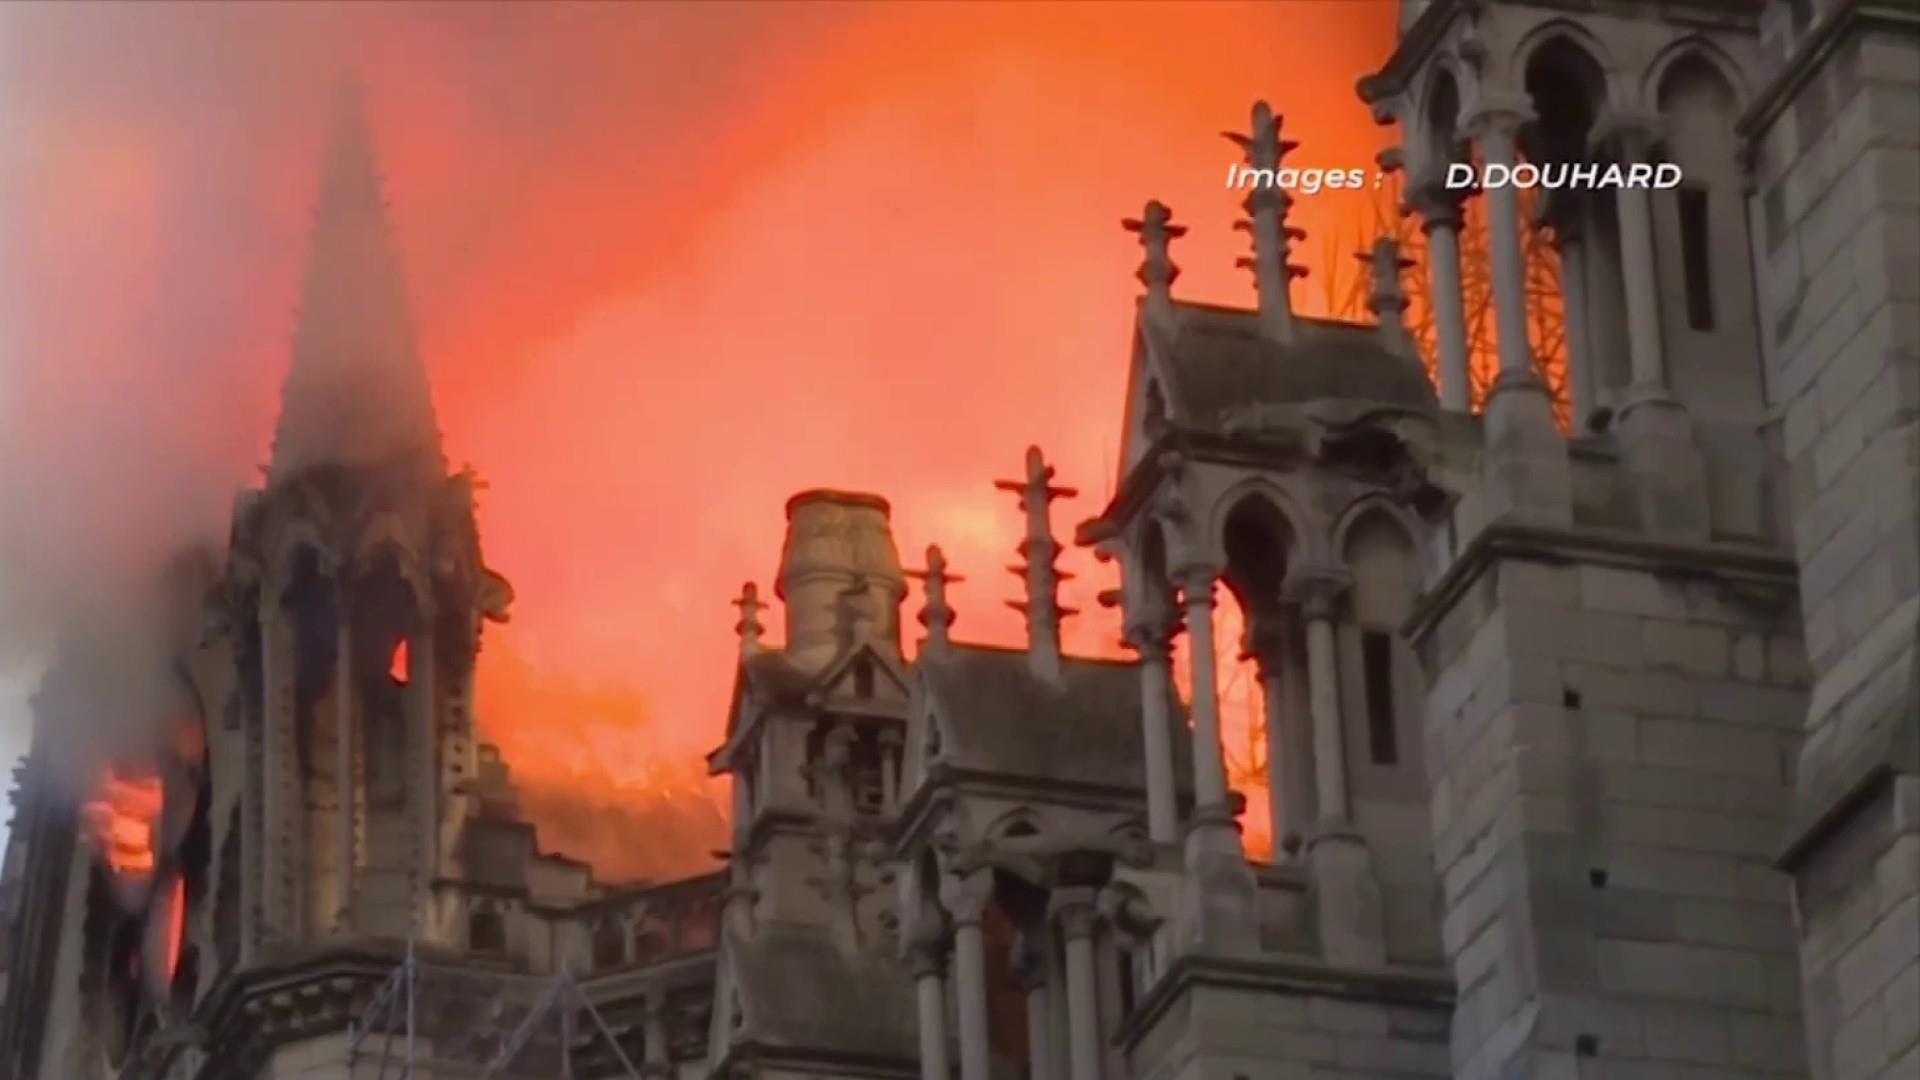 Notre Dame isn't the only historic building at risk of fire, experts say